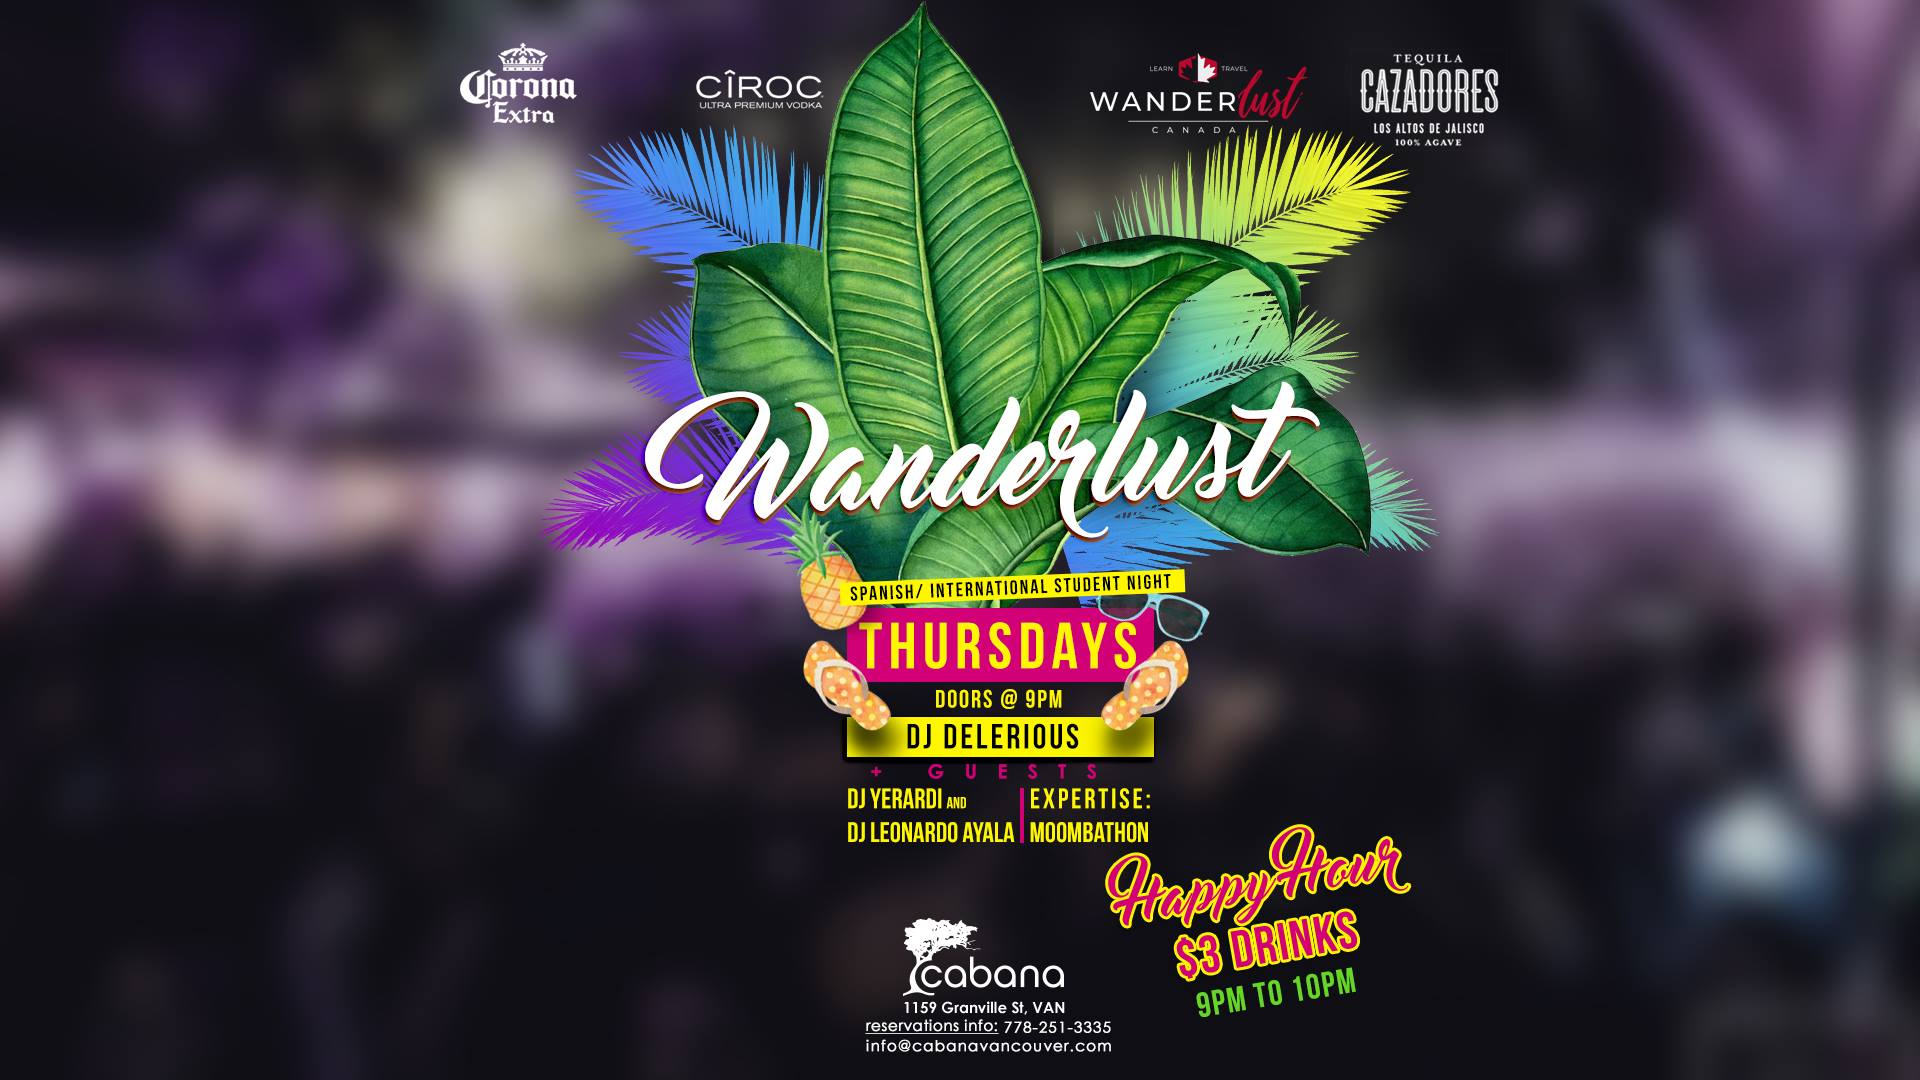 Cabana-loung-wanderlust-thursdays